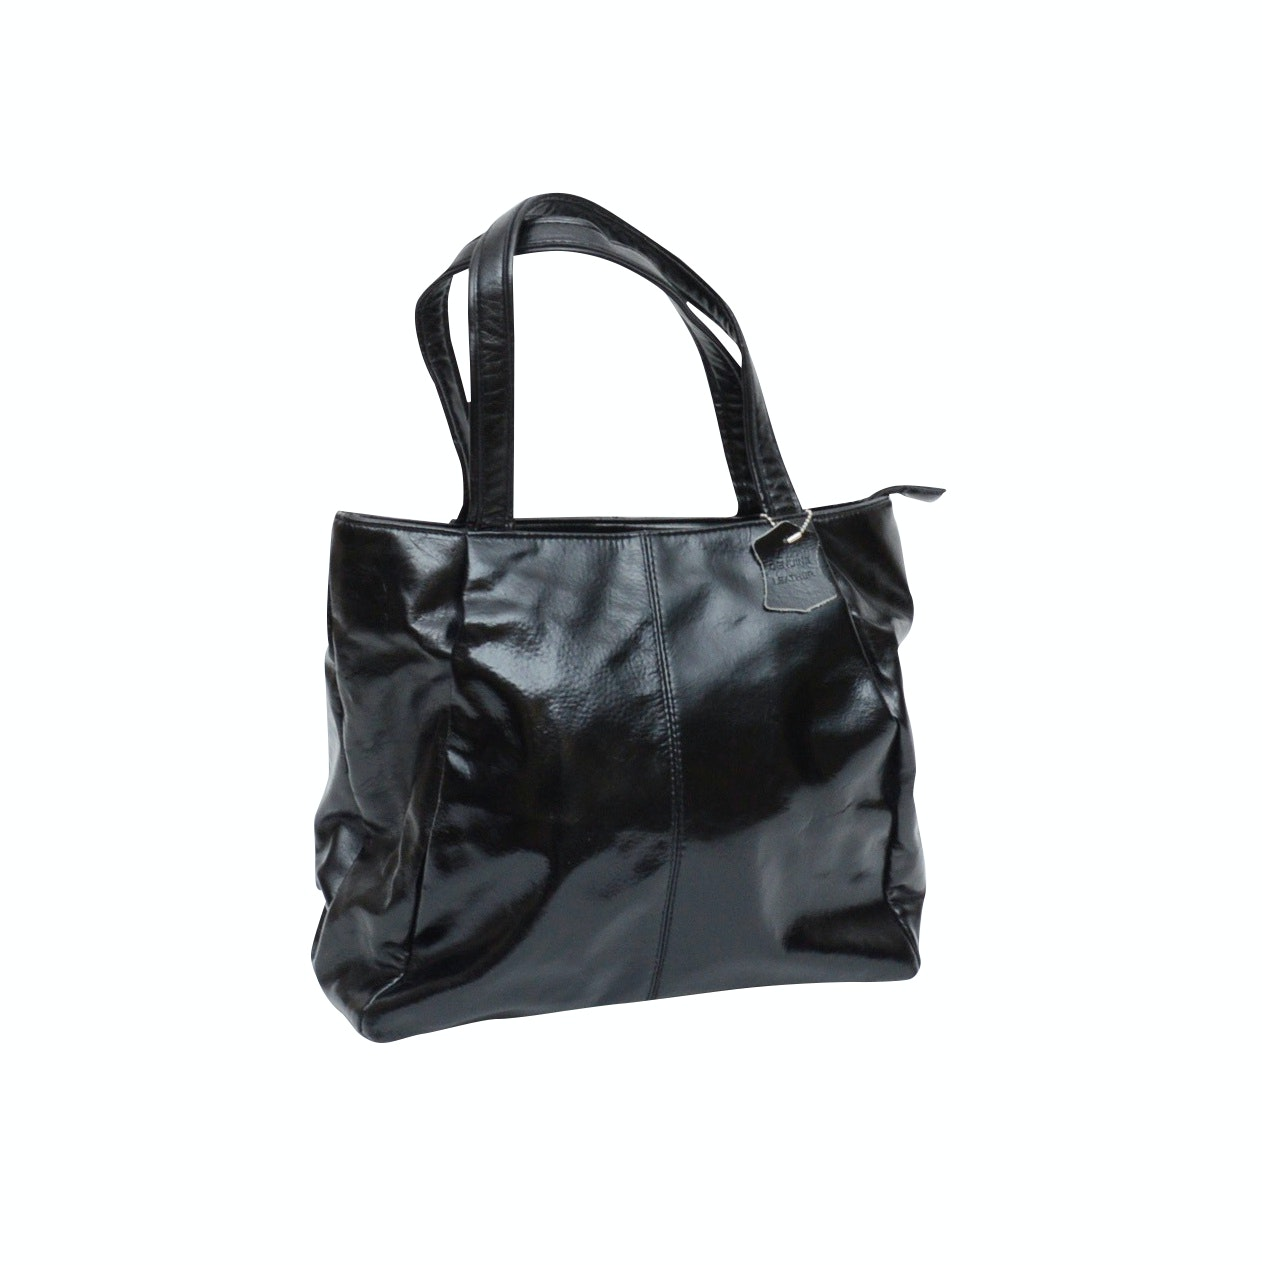 Harvé Benard Black Patent Leather Tote Shoulder Bag